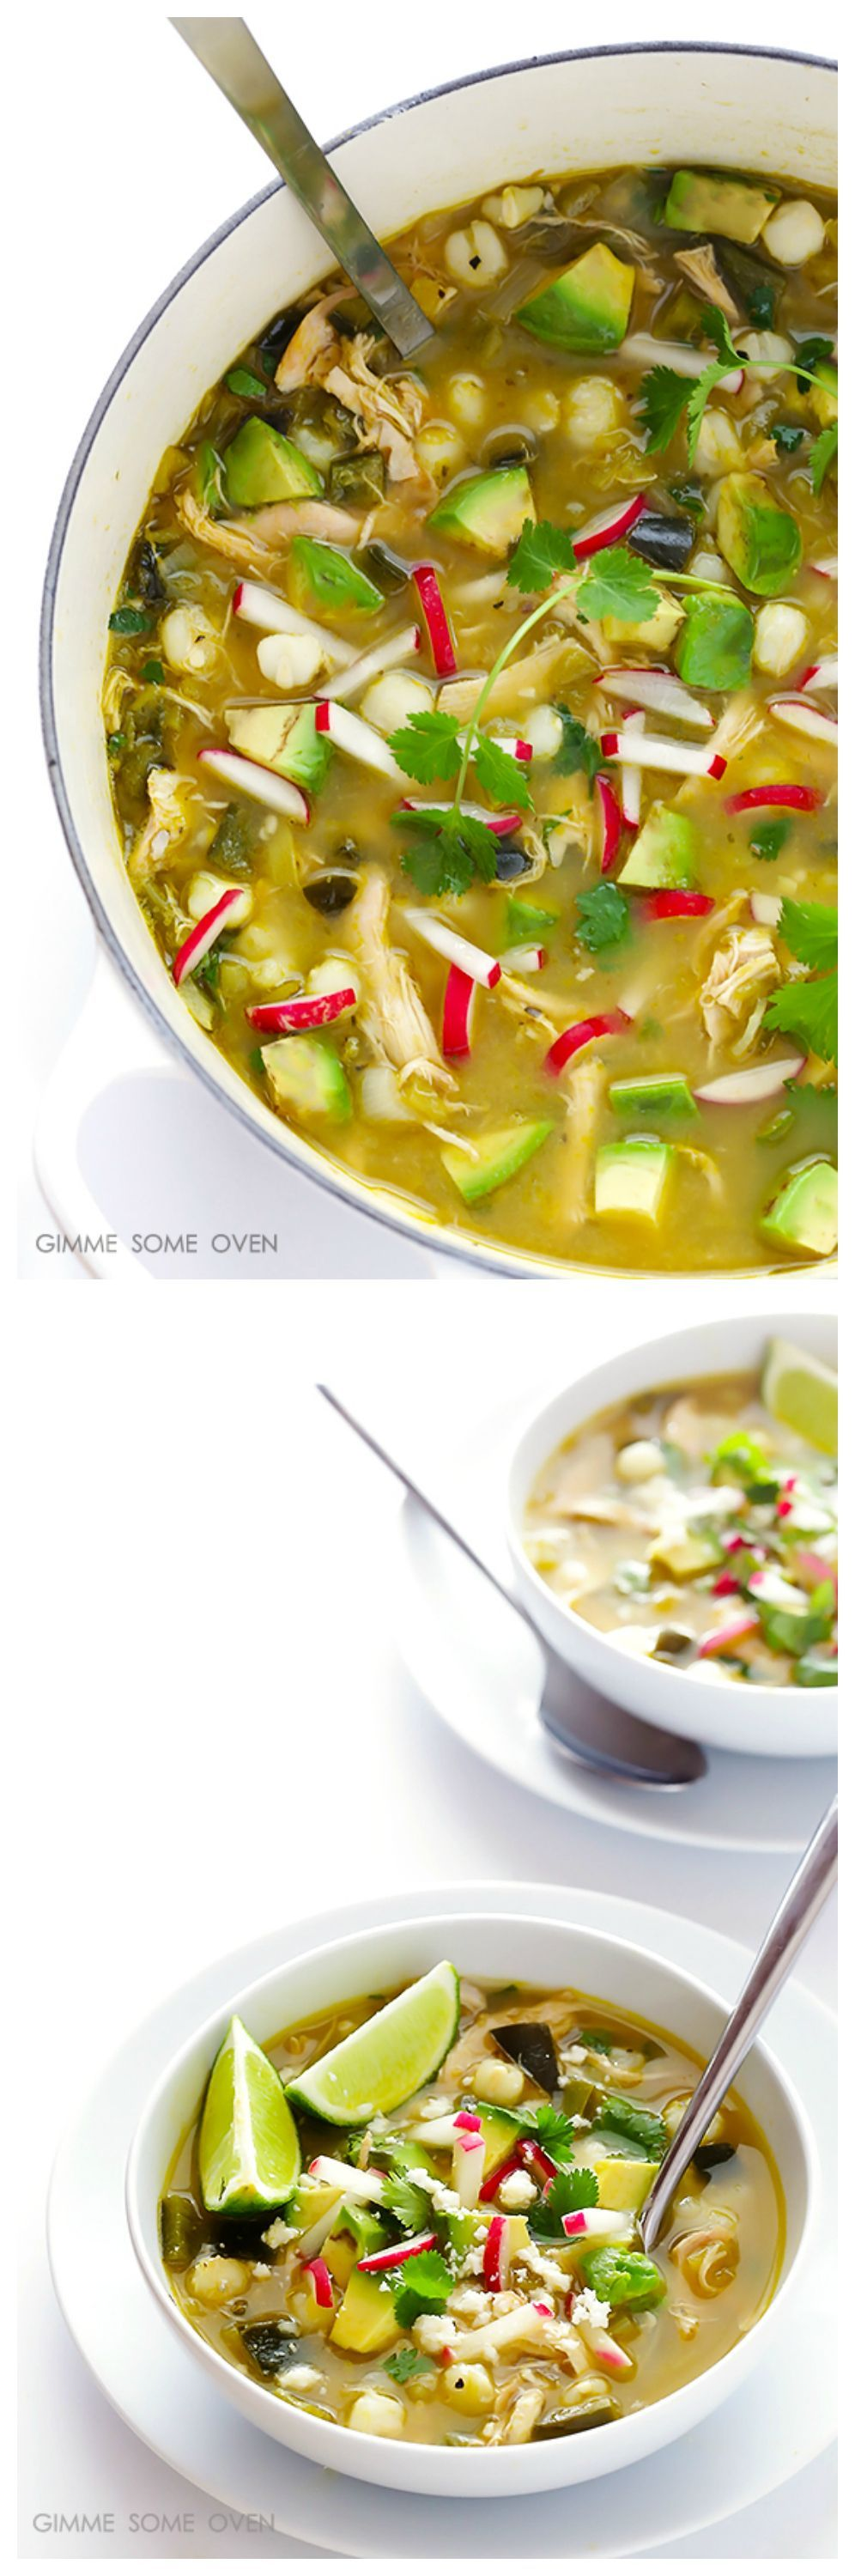 Easy Chicken Posole Verde #mexicanshrimprecipes